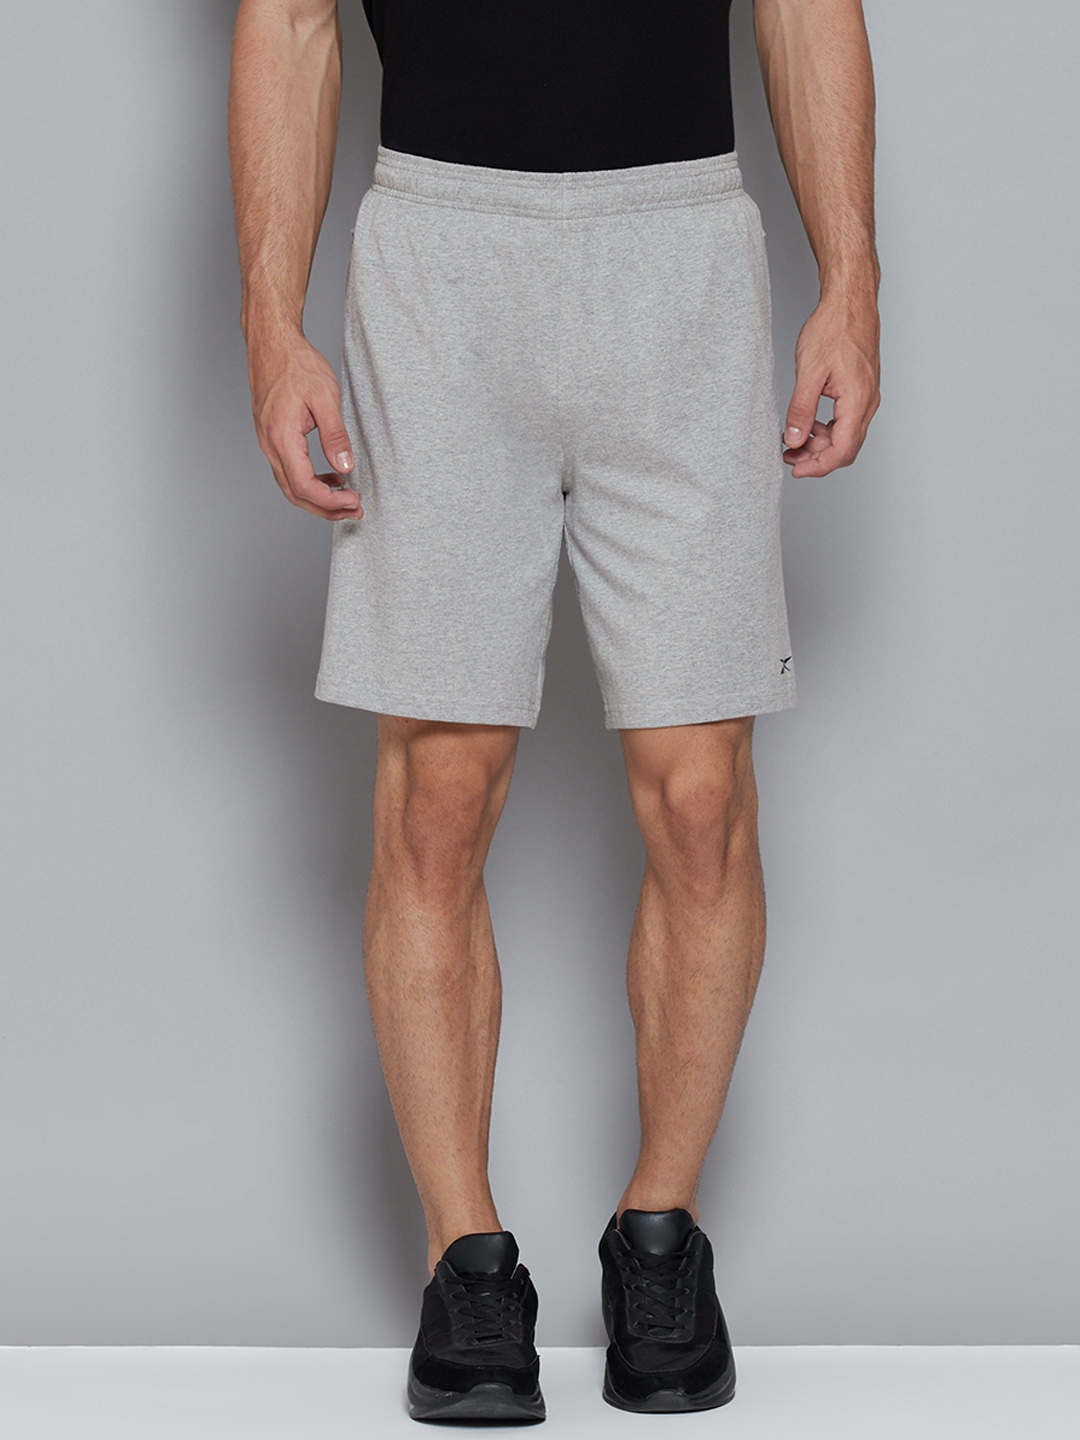 Reebok Men Grey Solid Pure Cotton Mid Rise Training or Gym Sports Shorts